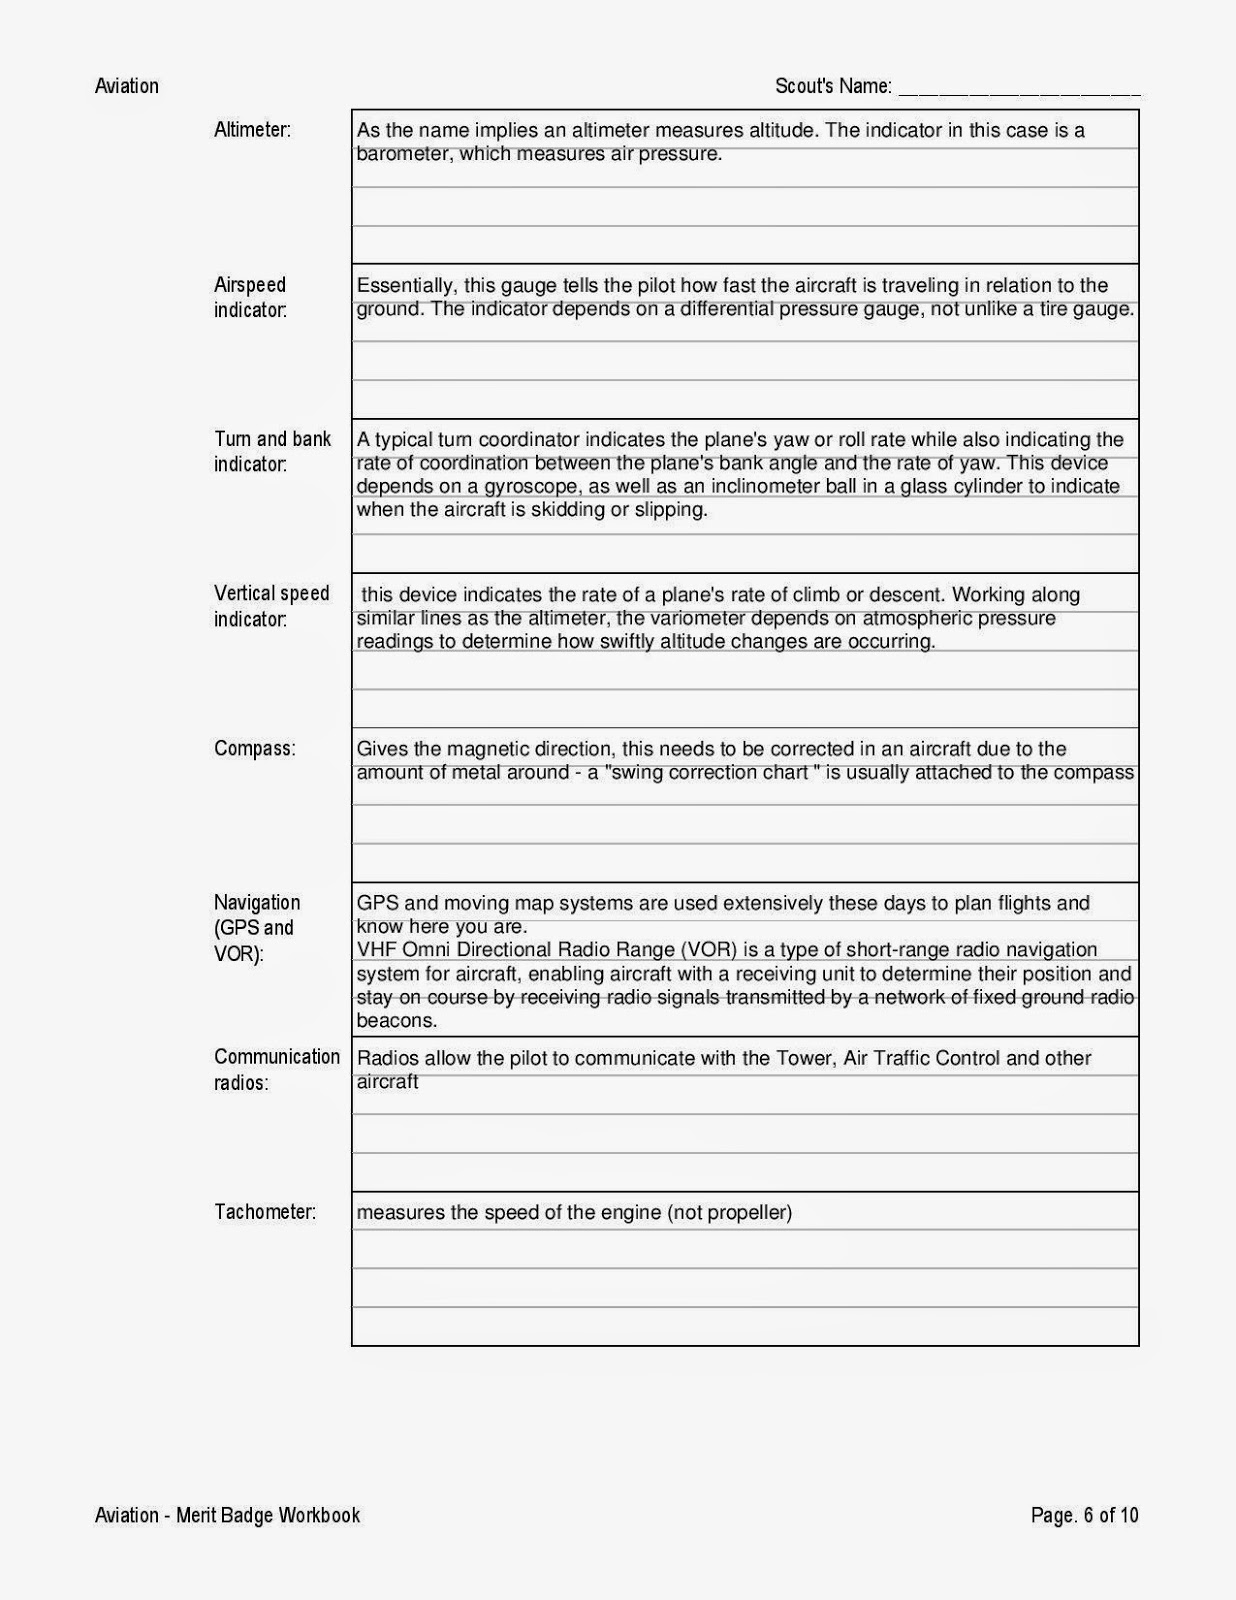 Aviation Merit Badge Worksheet Answers Worksheets for all ...